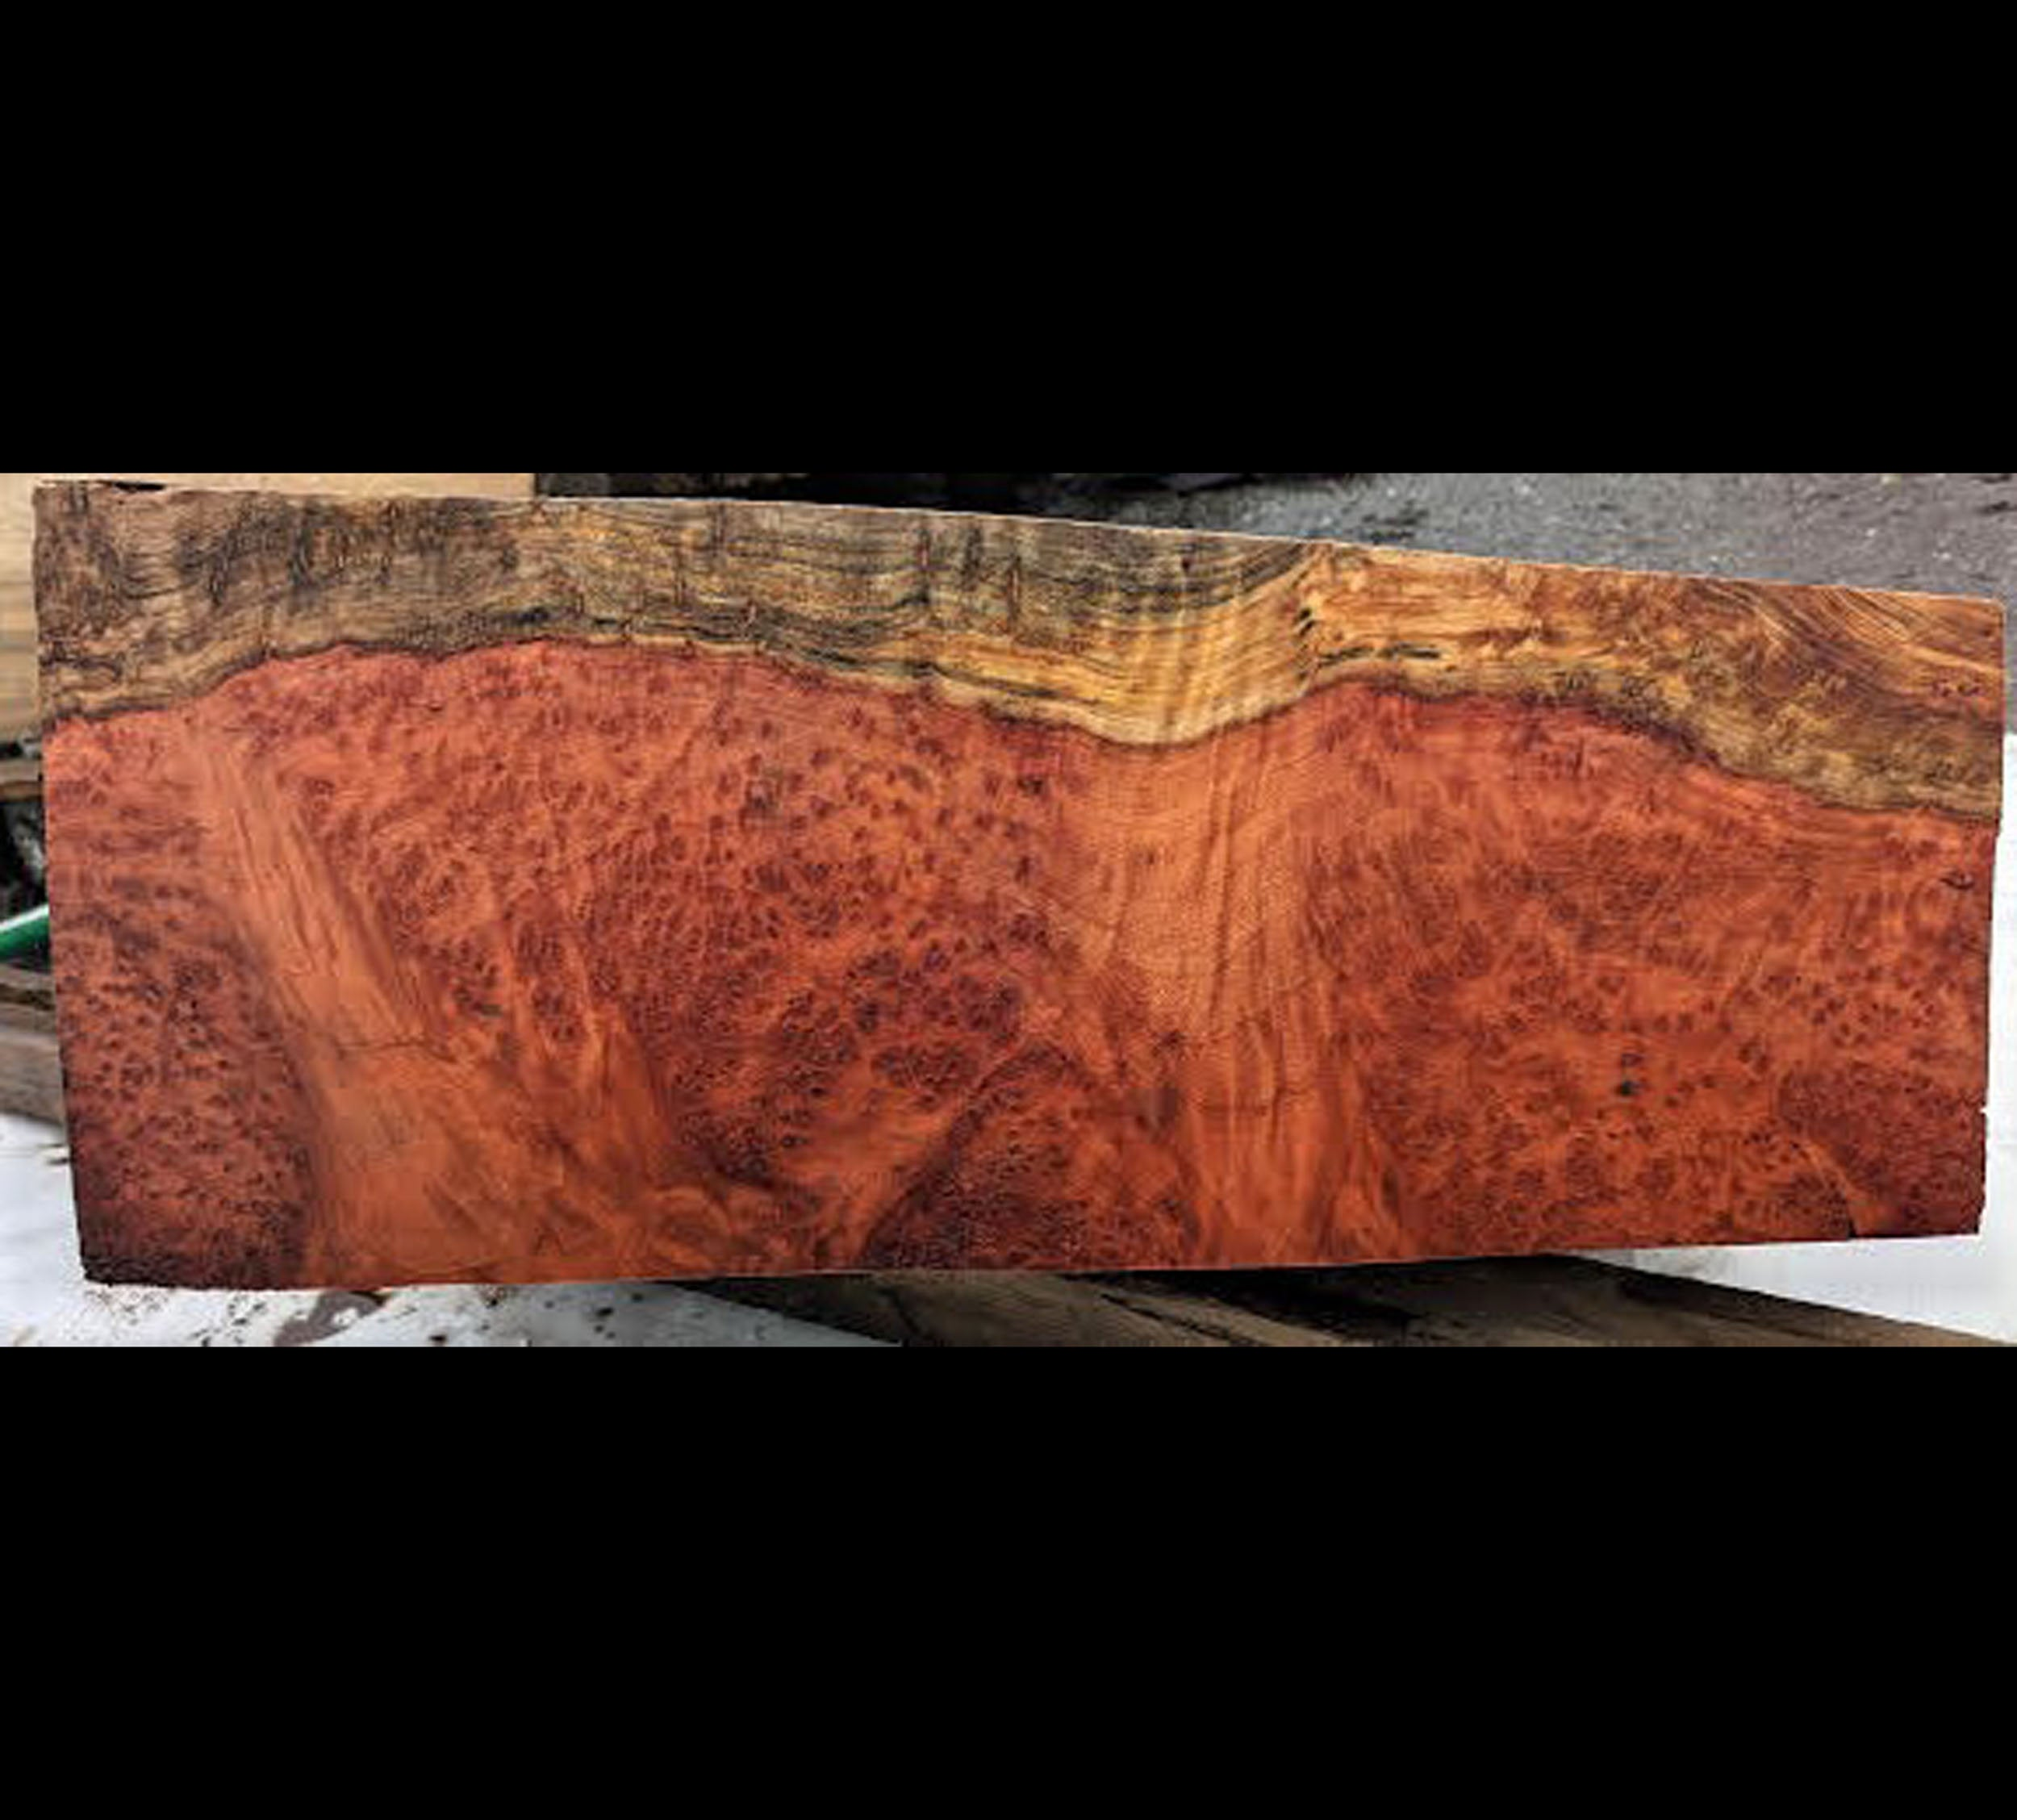 wood turning | curly redwood | craft wood - blz145